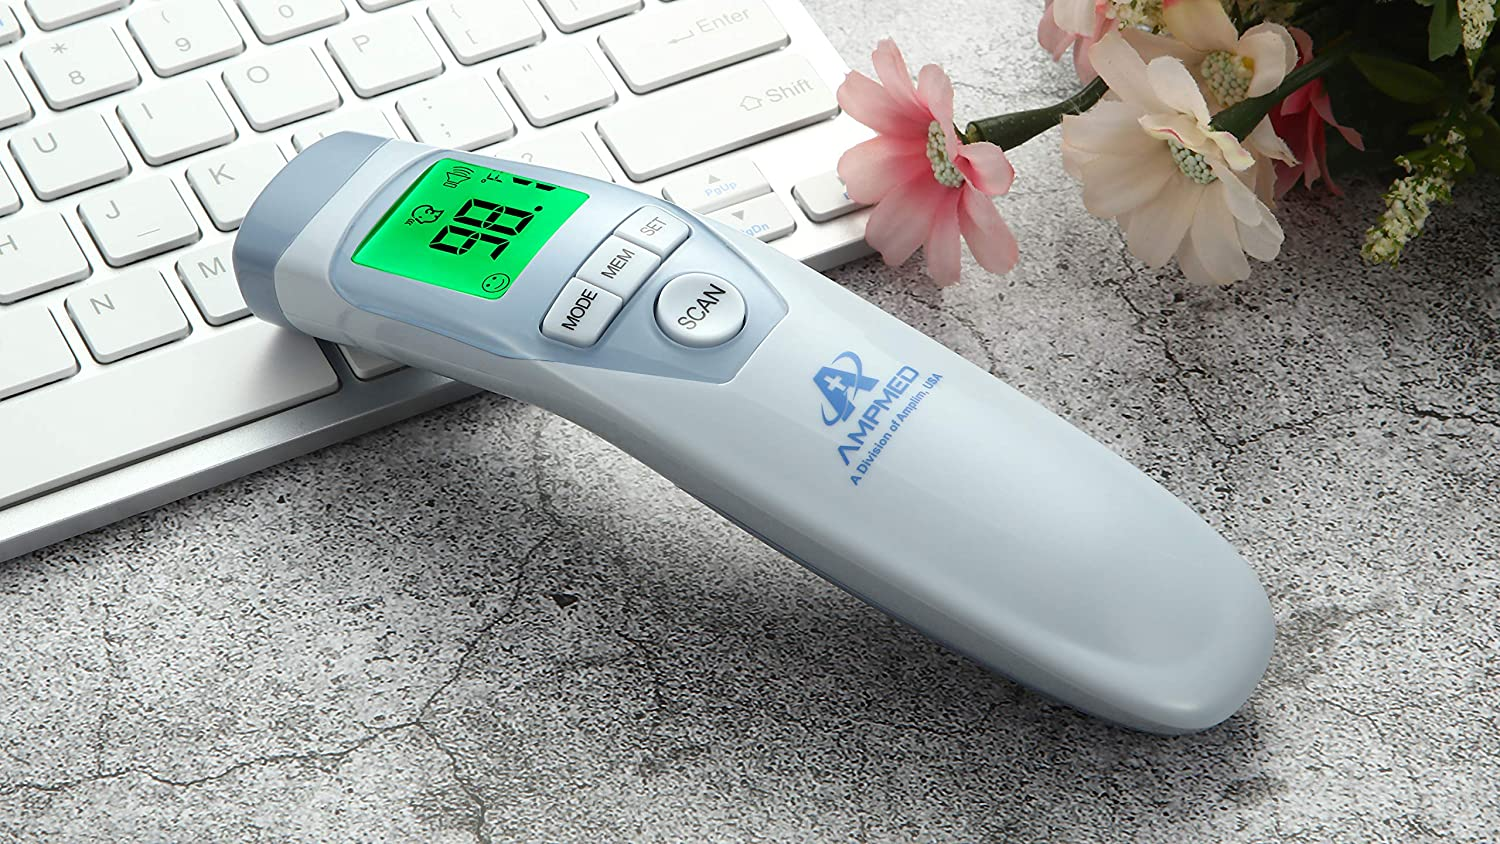 Hospital Medical Grade No Touch Fever Temperature Thermometer Amplim Non-Contact Touchless Infrared Digital Forehead Thermometer for Adults and Baby